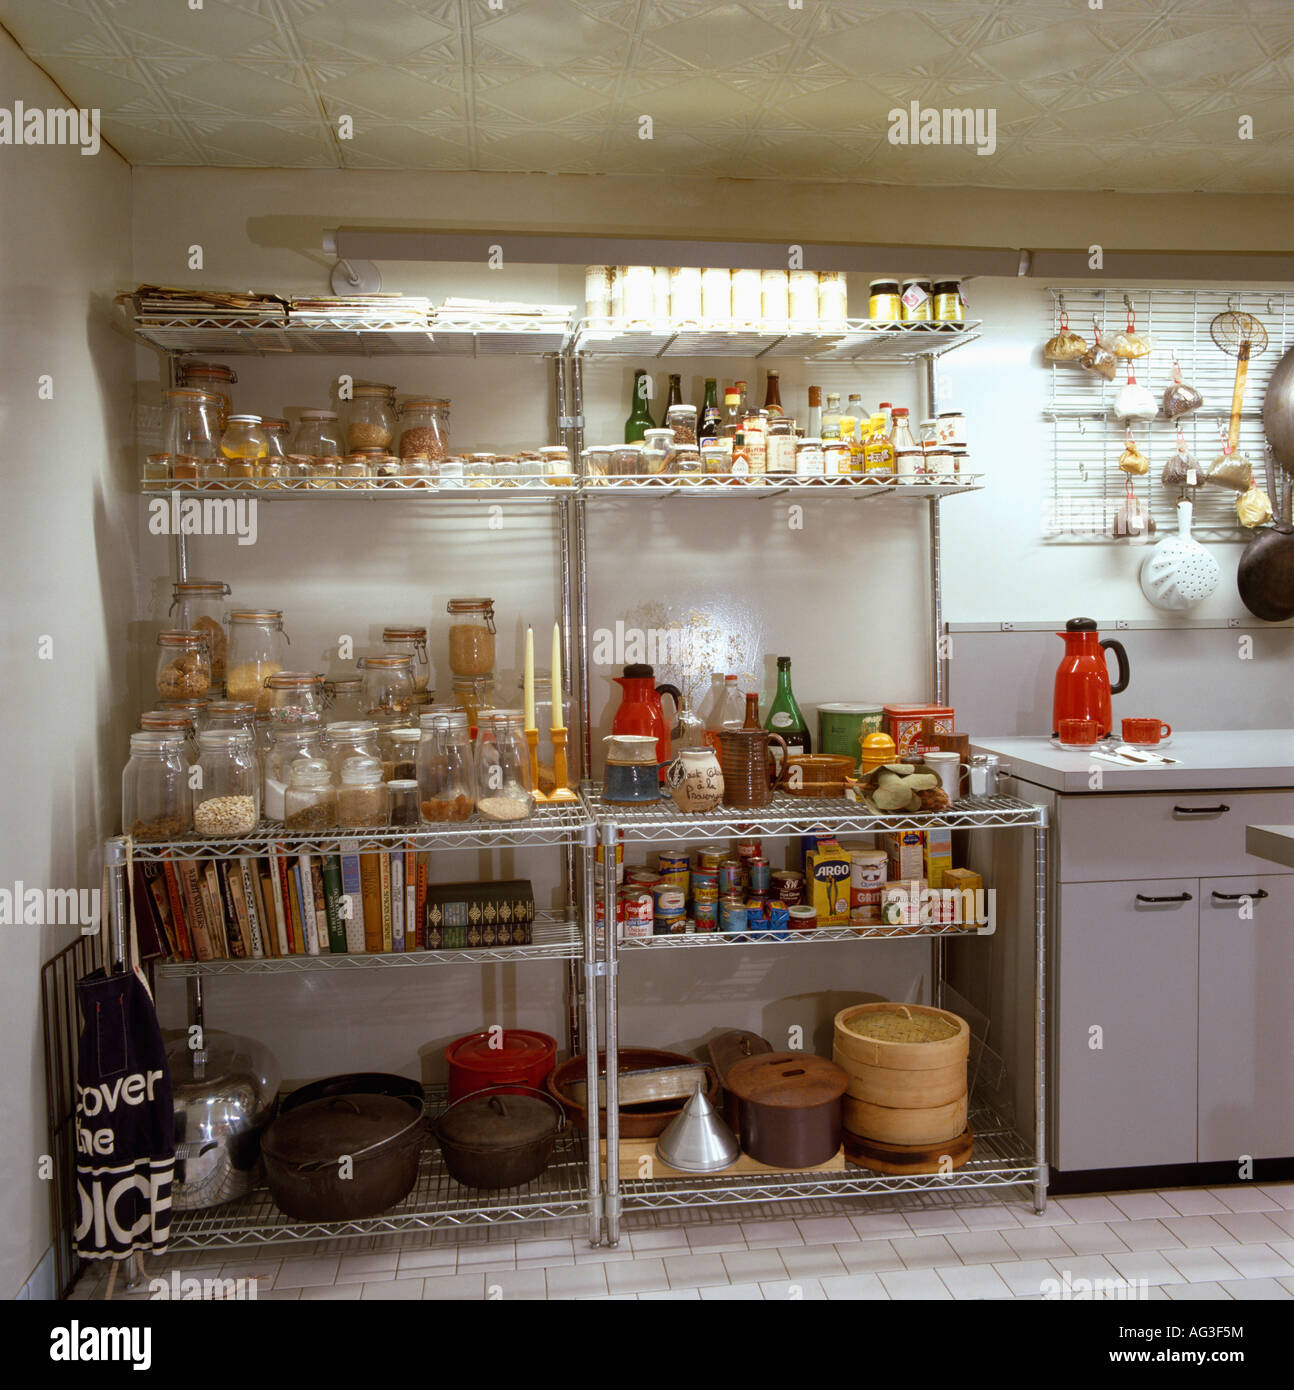 Industrial Kitchen Shelving High Resolution Stock Photography and ...